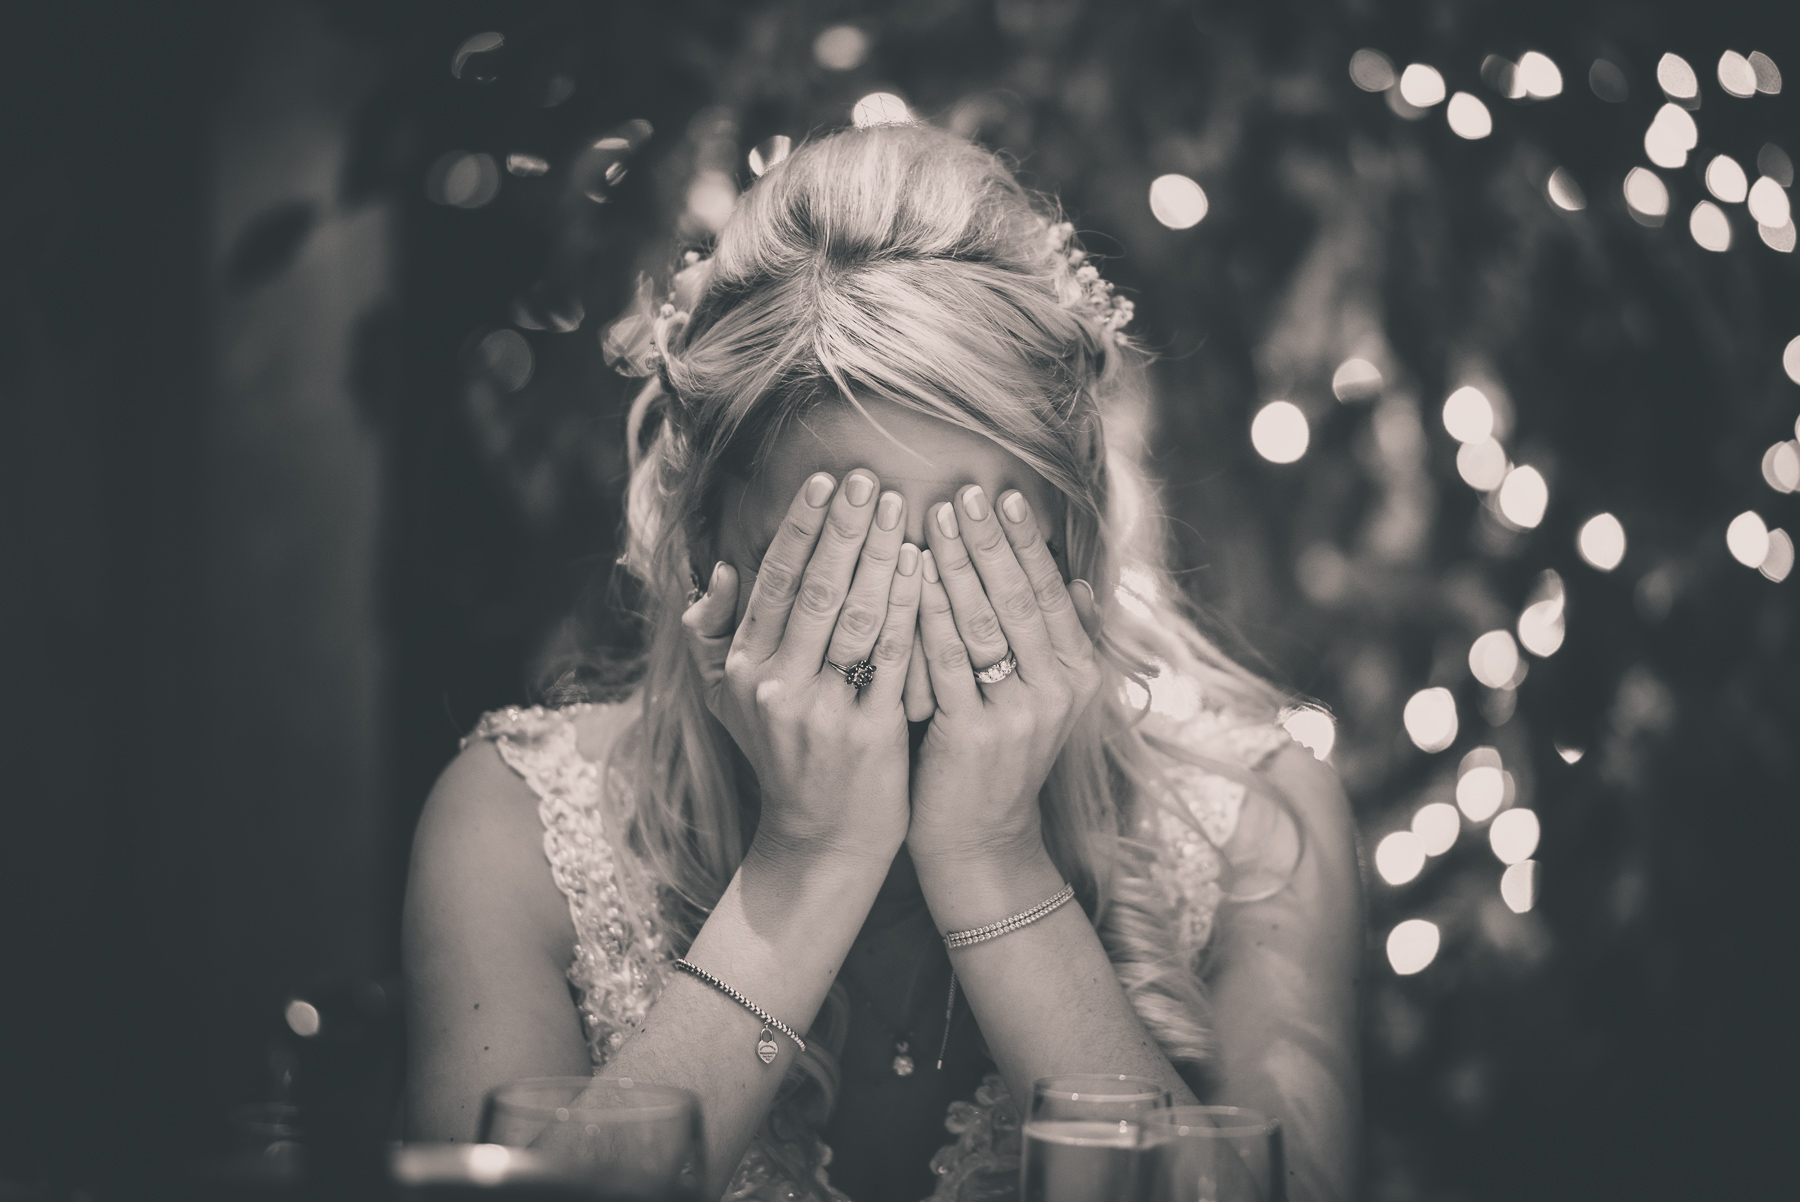 Embarrassed Bride at Wedding